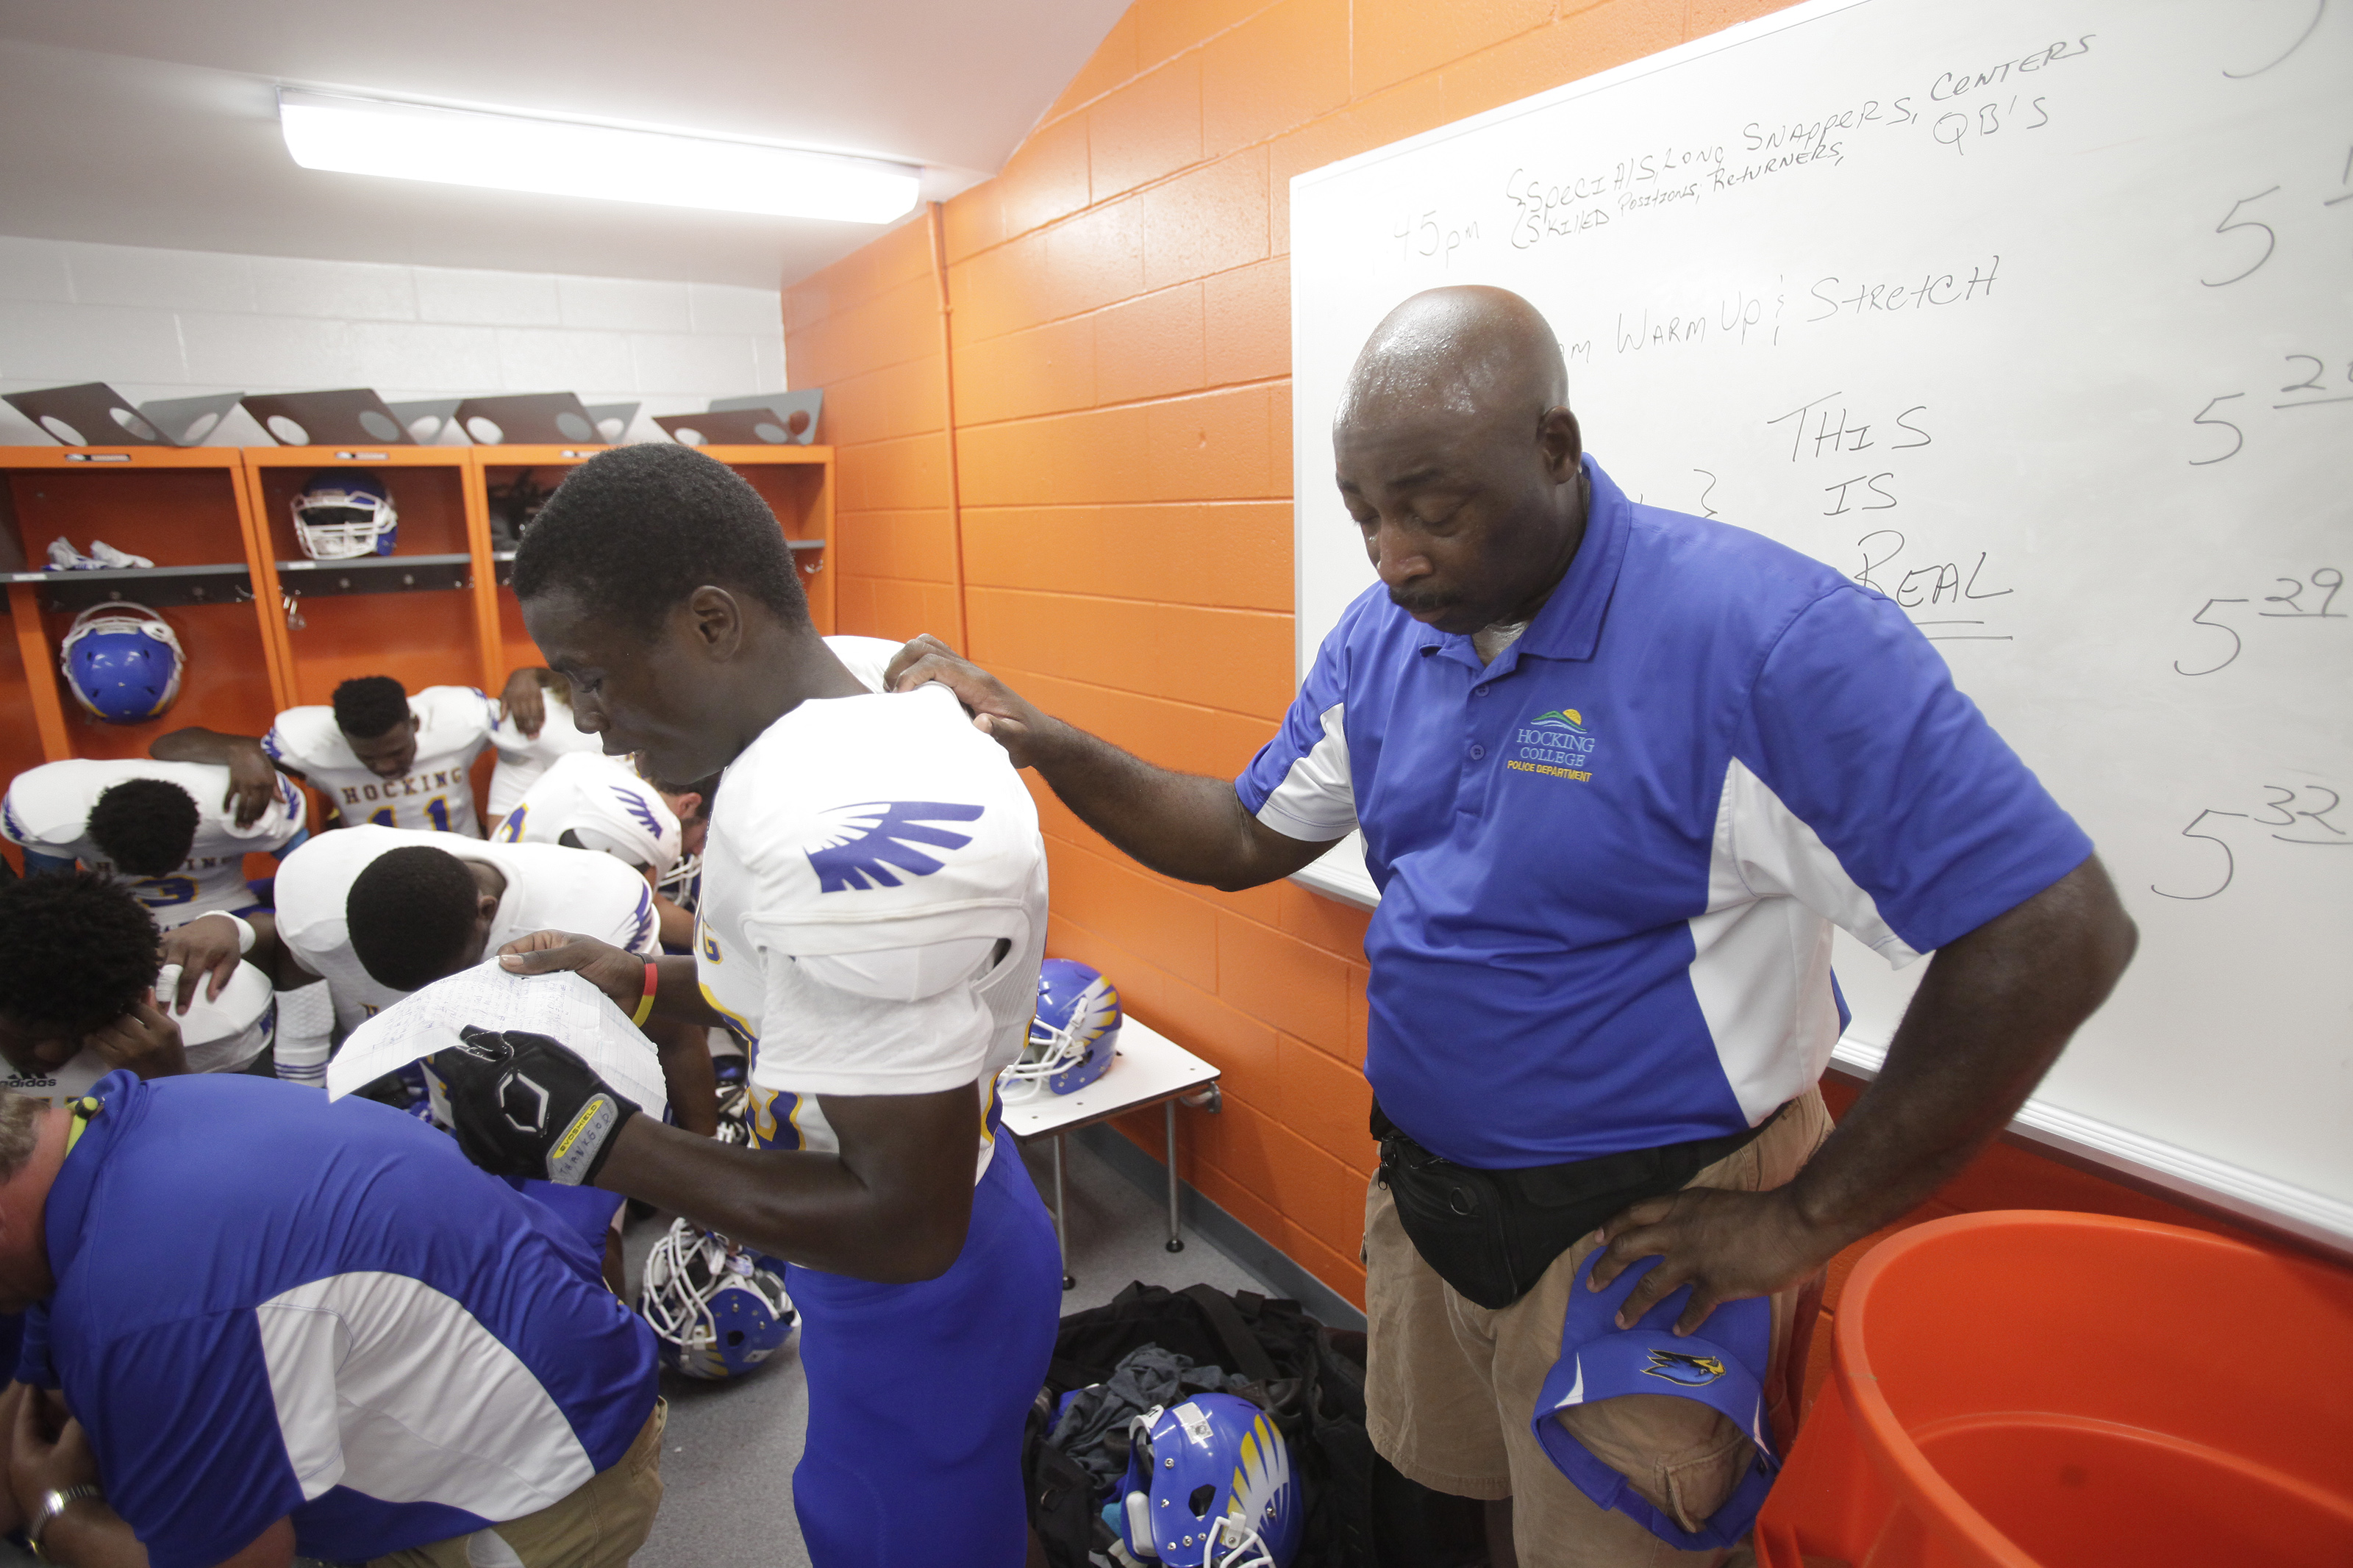 Hocking College head football coach Al Matthews, right, pauses while Drew Milbrooks reads a prayer before the start of the schools first football game, Monday, Aug. 31, 2015, against Ohio Northern University in Ada, Ohio. With falling enrollment and a fin